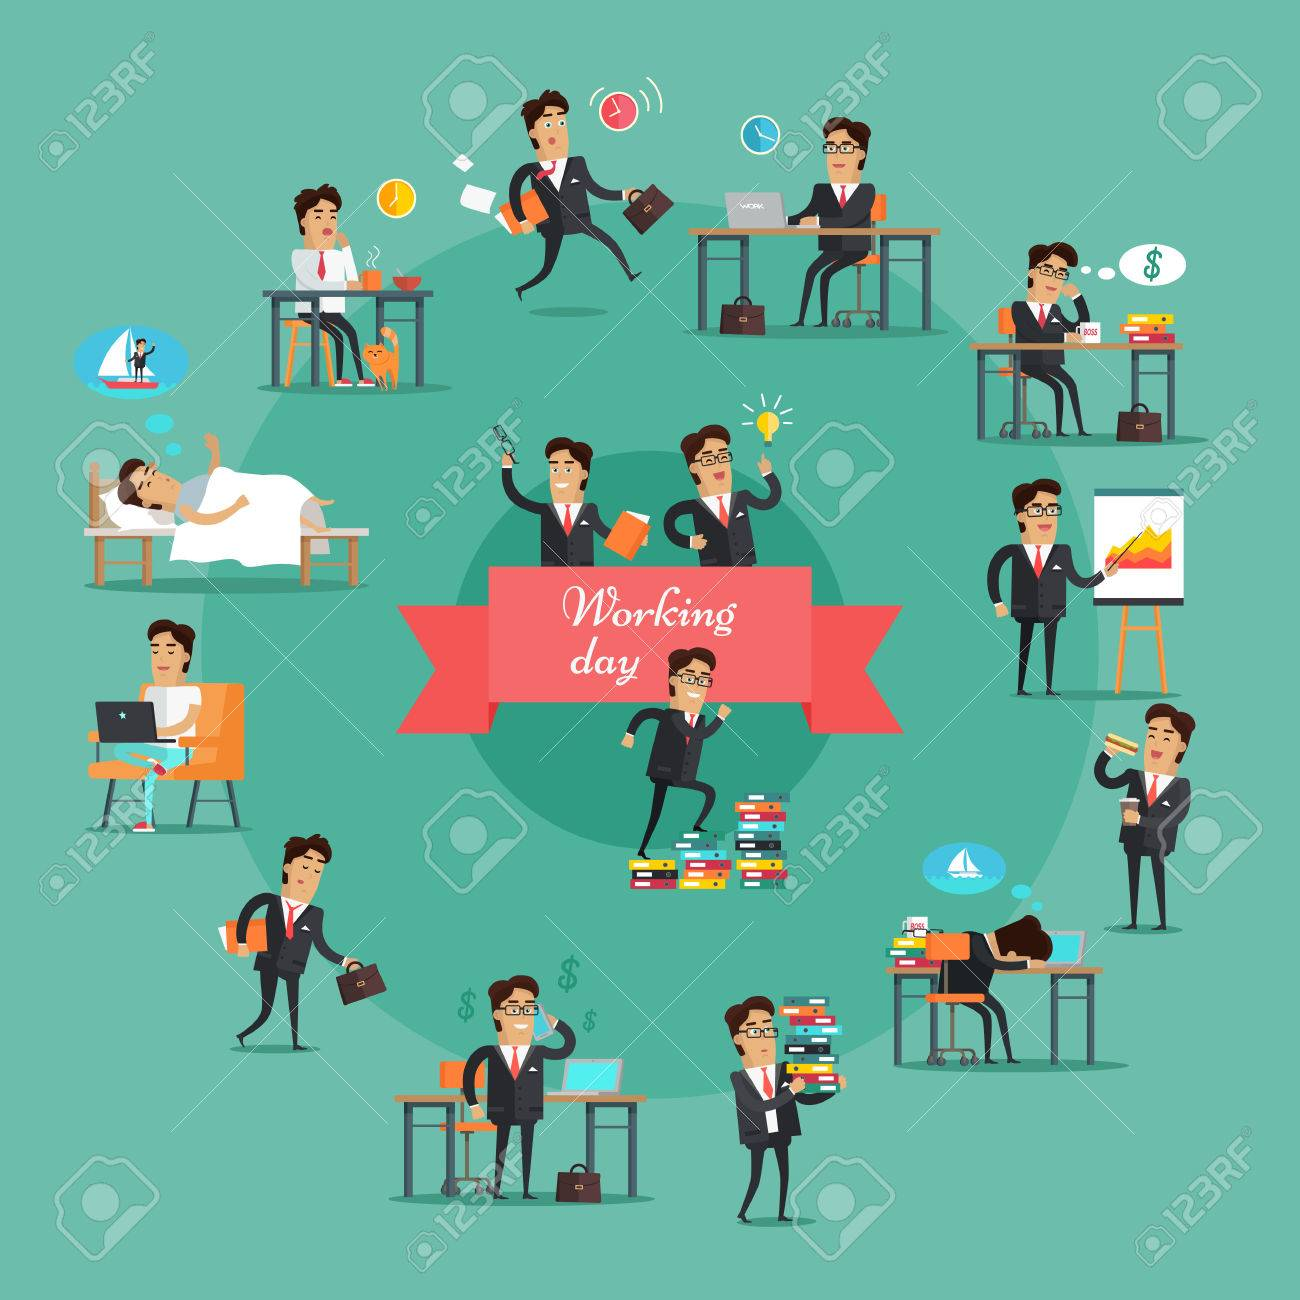 Businessman working day set. Young businessman in black business suit and tie in various work situations. Business people in office. Office life collection. Vector illustration in flat design. - 64621268